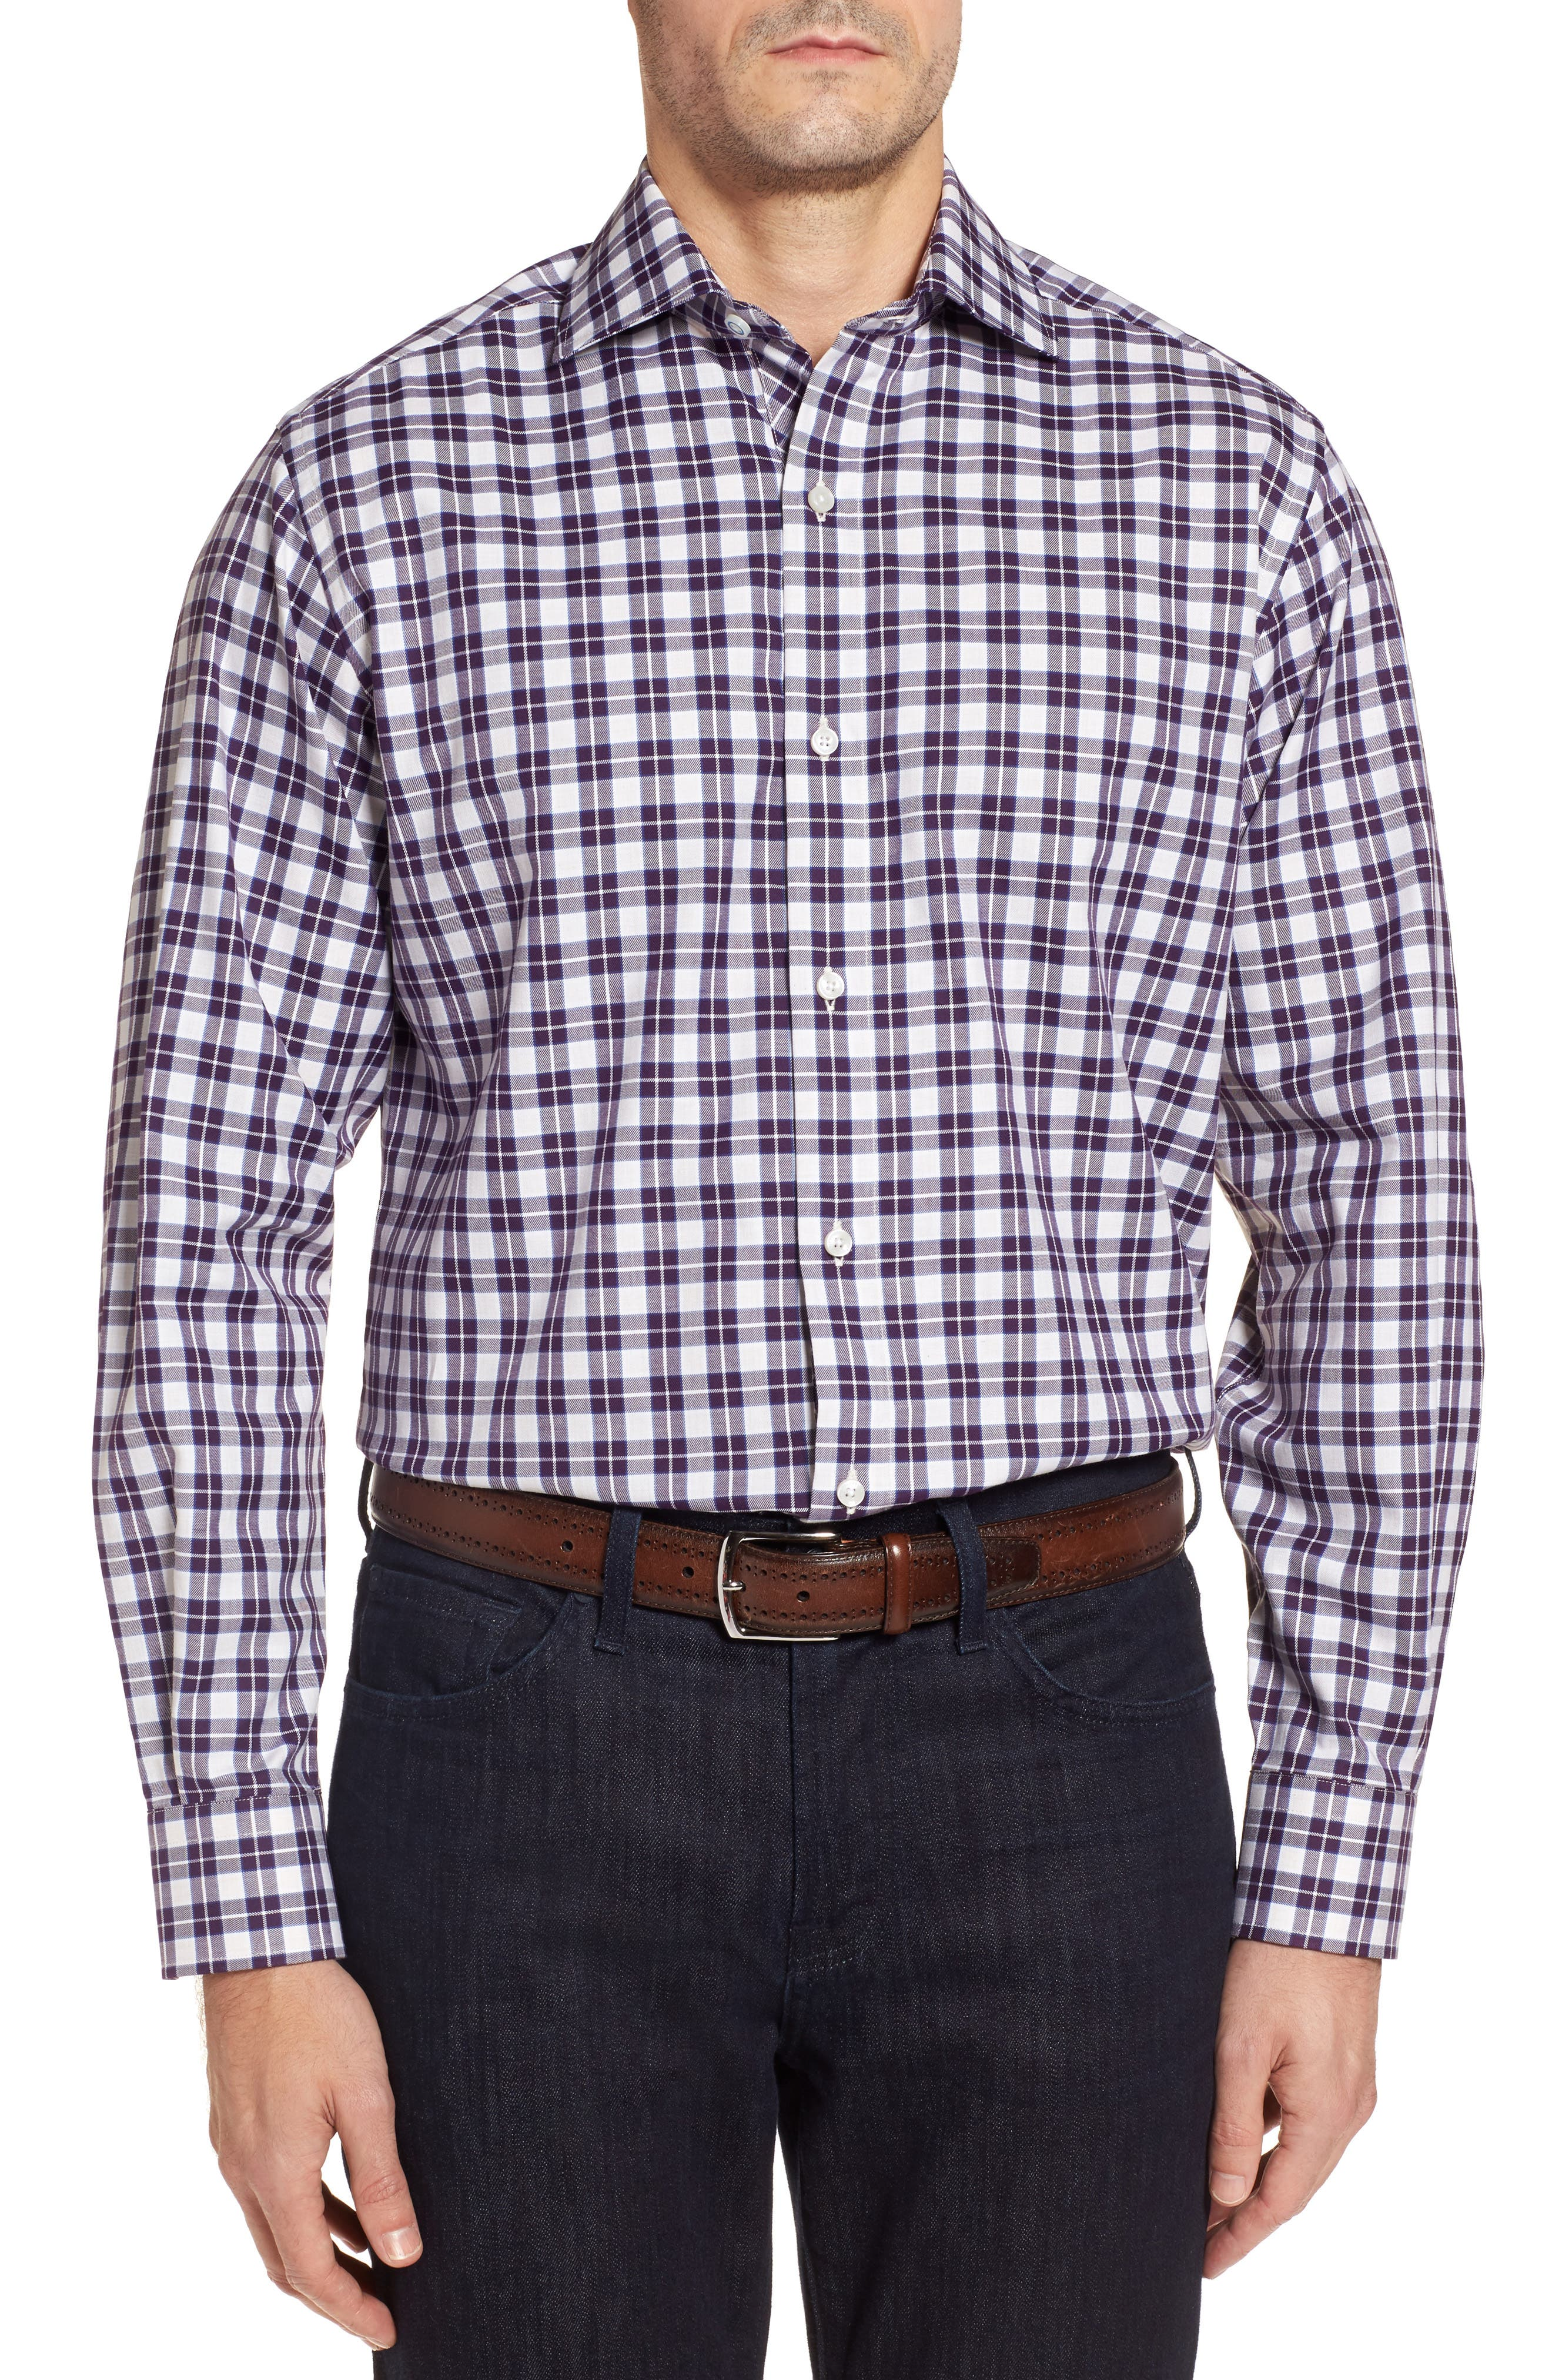 Alternate Image 1 Selected - TailorByrd Chalmette Check Twill Sport Shirt